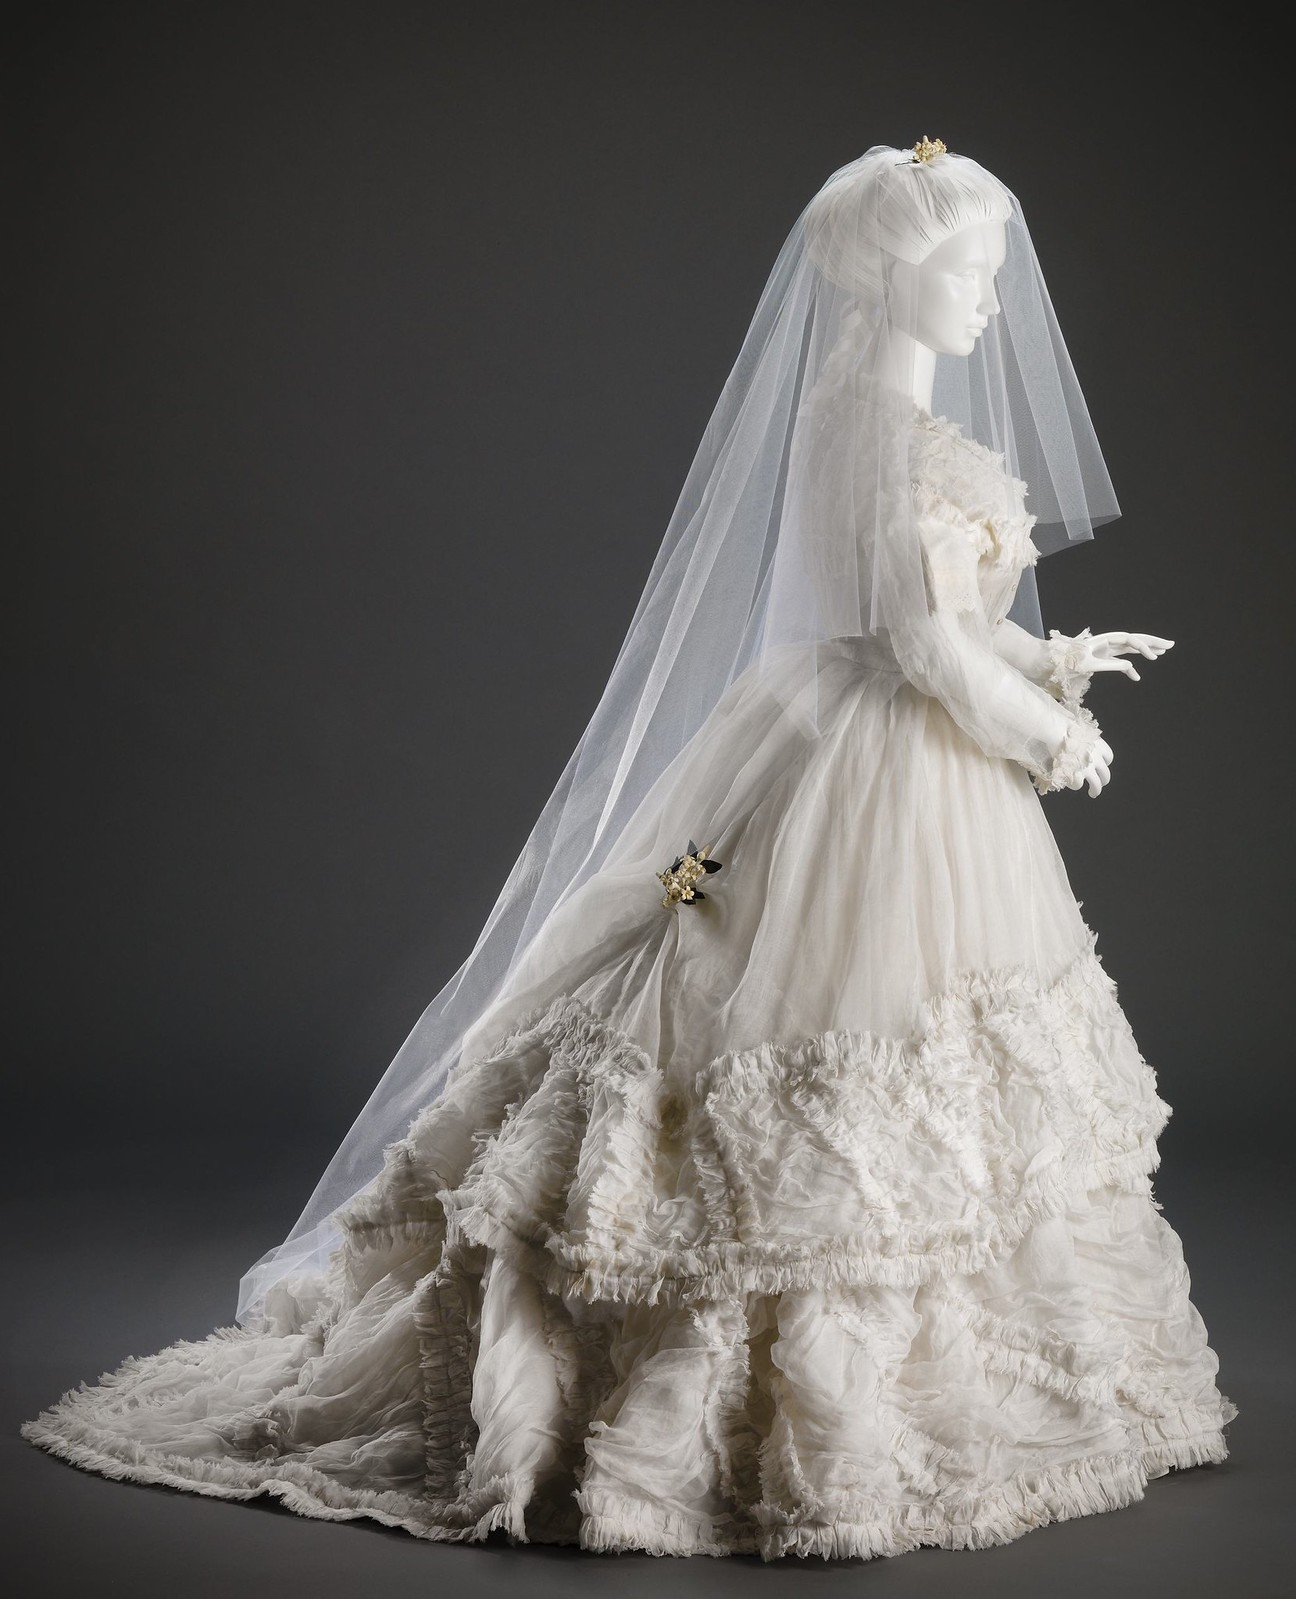 1868 Wedding Dress. American. Cincinnati Art Museum